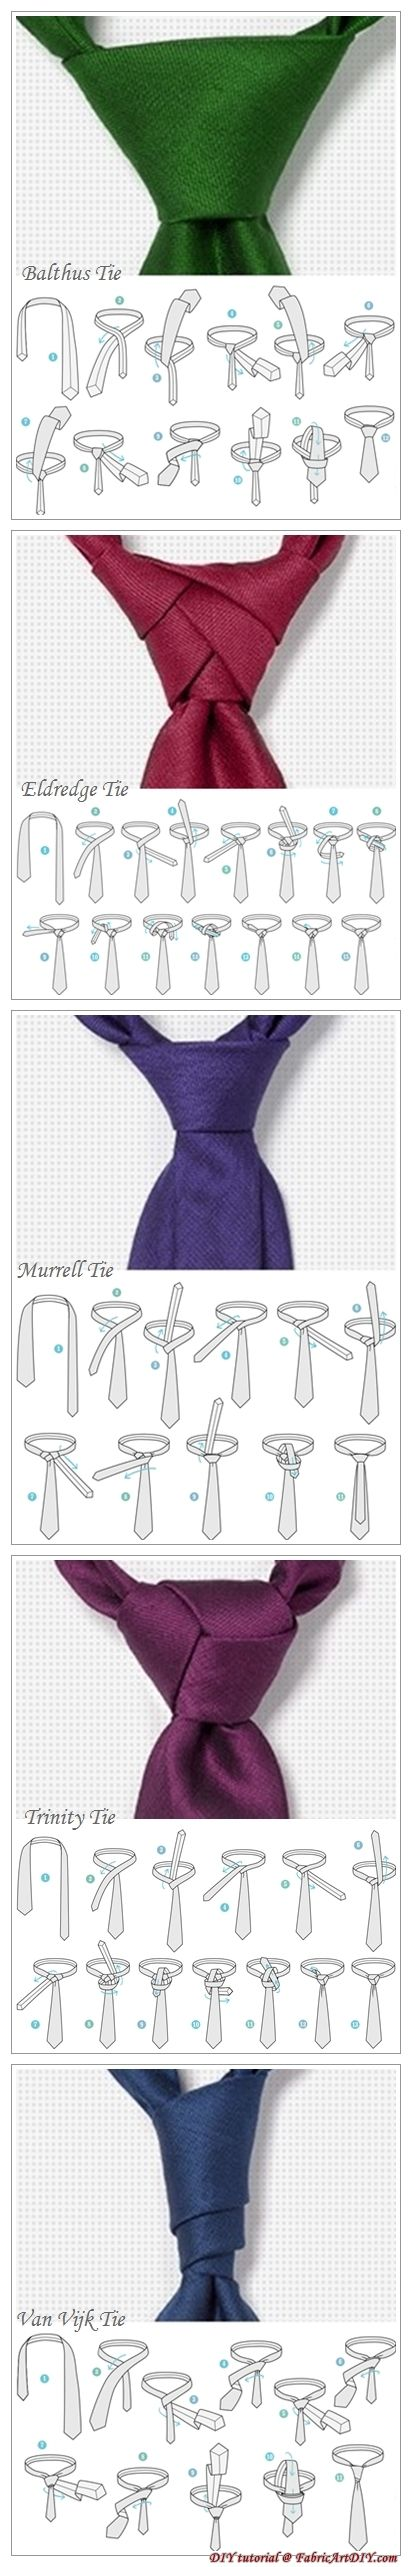 Adventurous tie knot instruction | Raddest Men's Fashion Looks On The Internet: http://www.raddestlooks.org Más